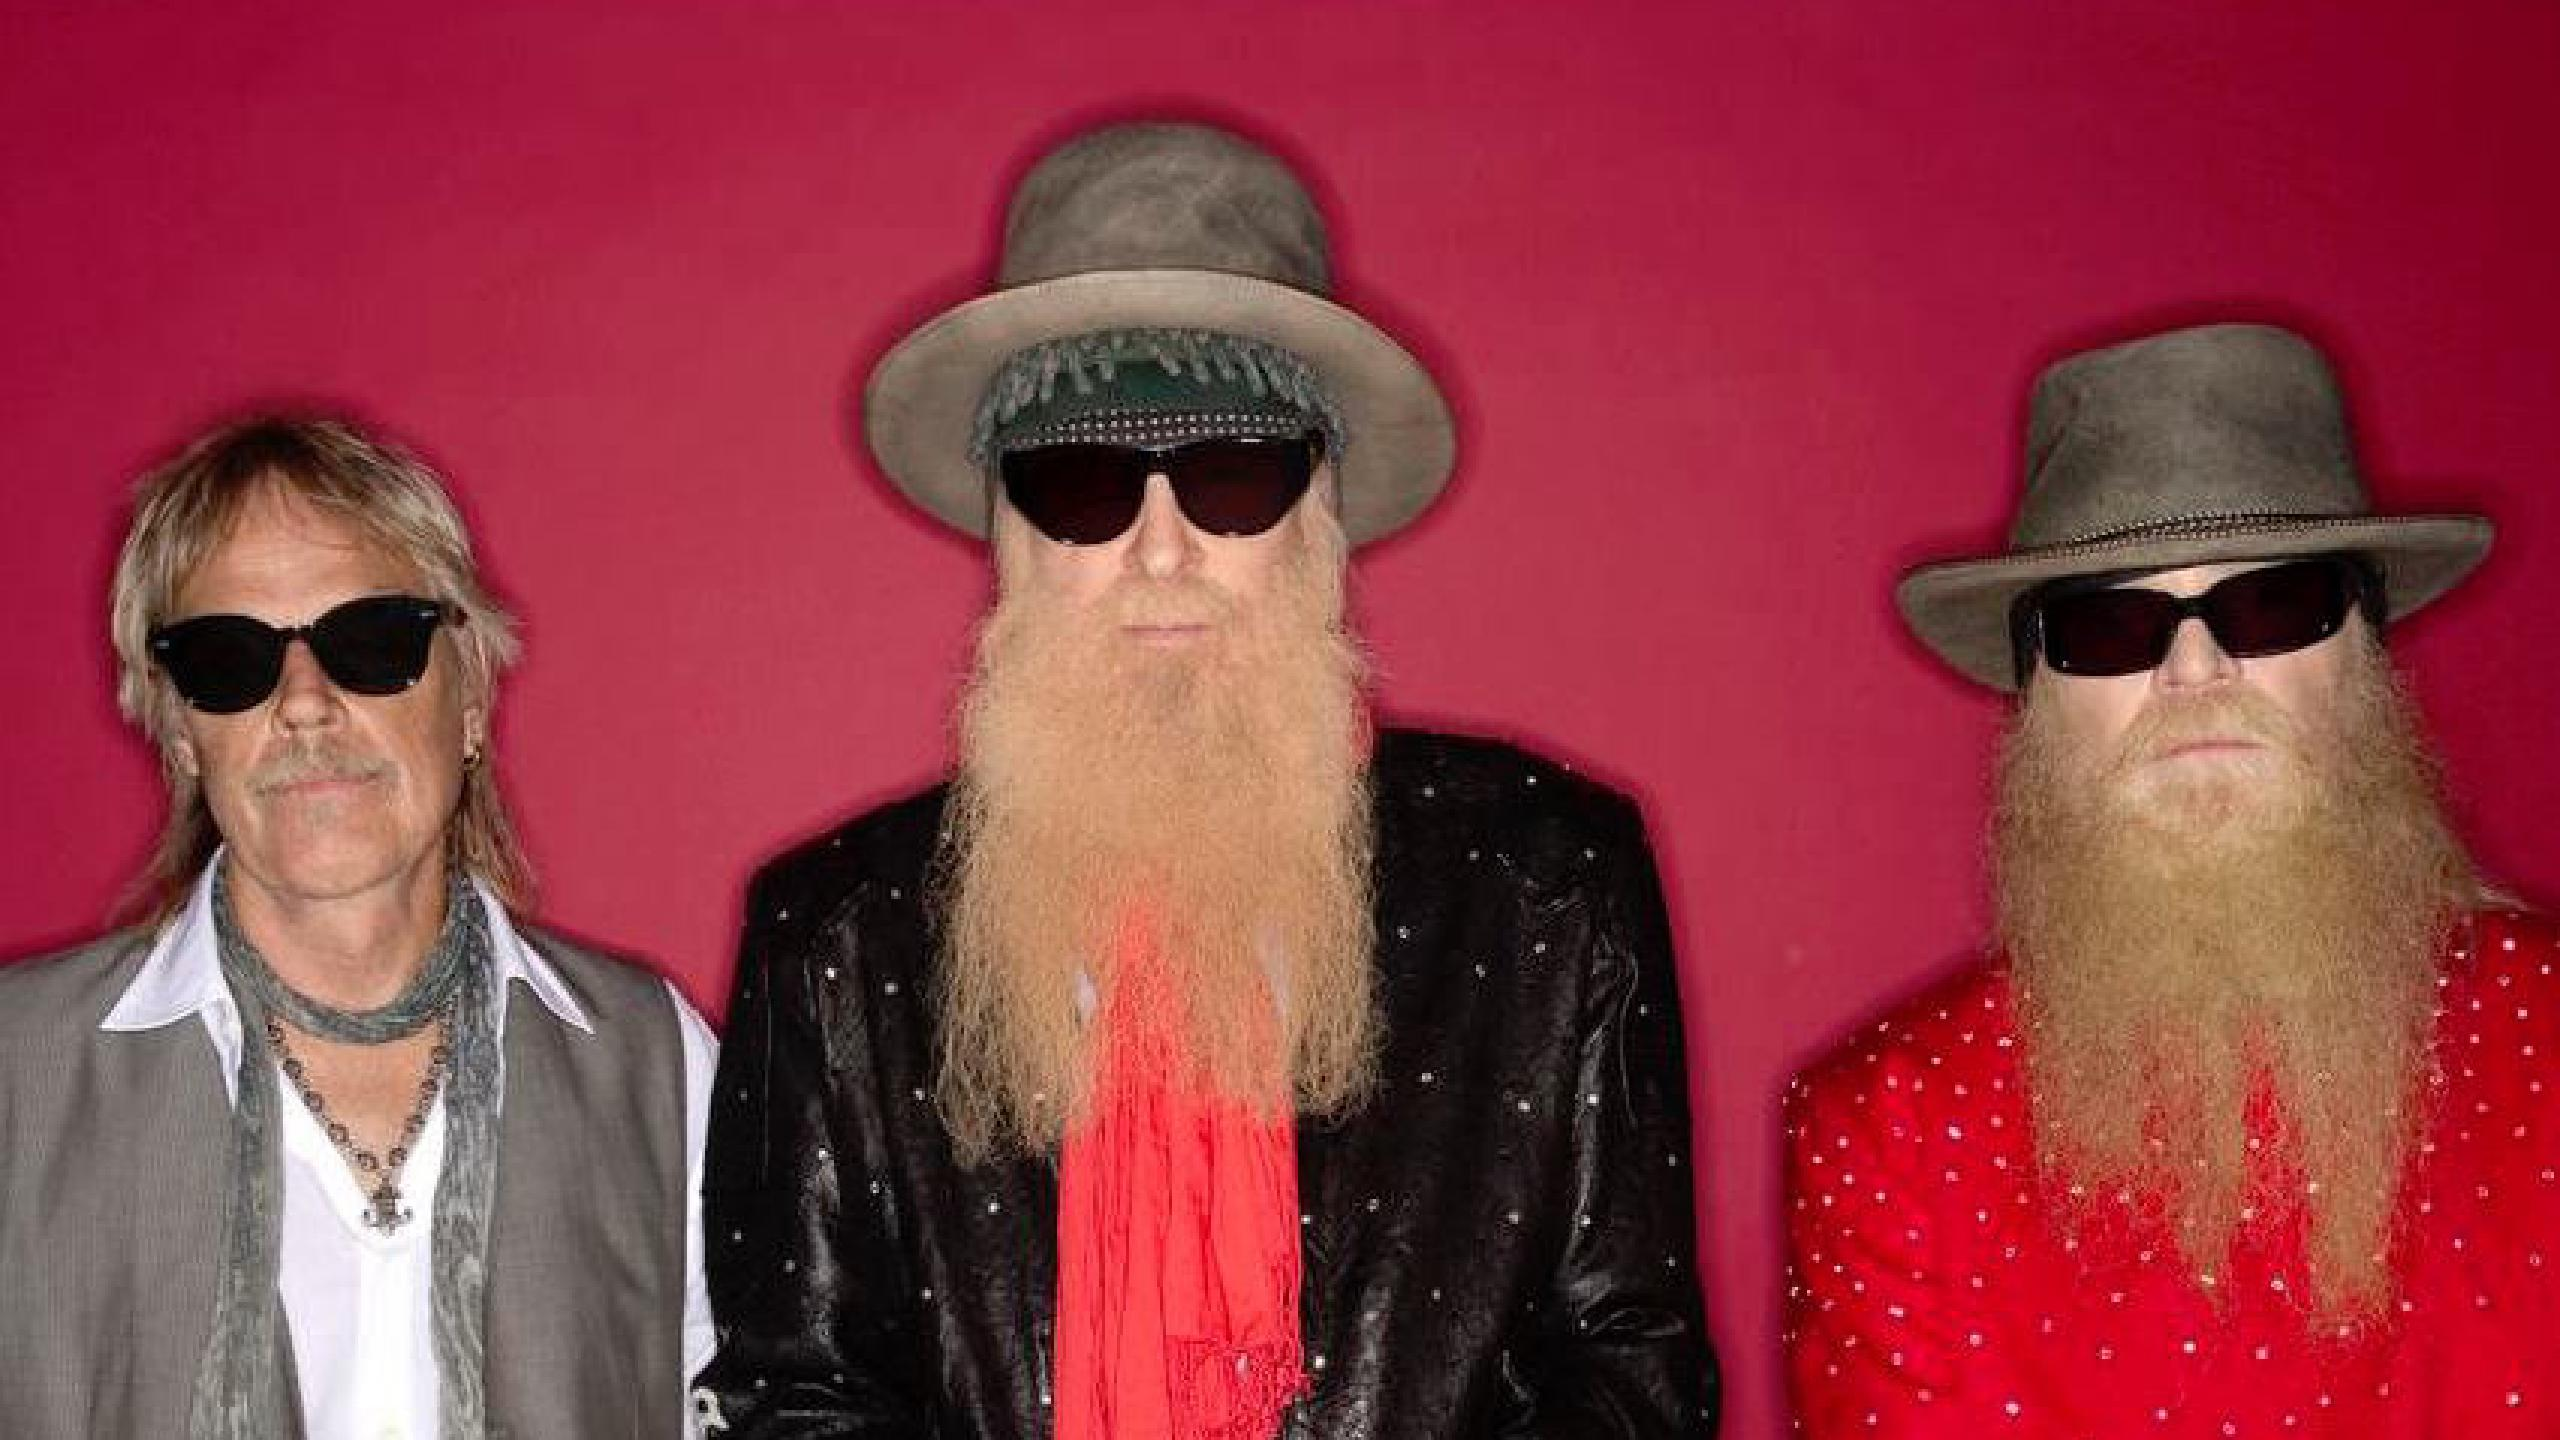 Zz Top Tour Dates 2017 2018 Zz Top Tickets And Concerts